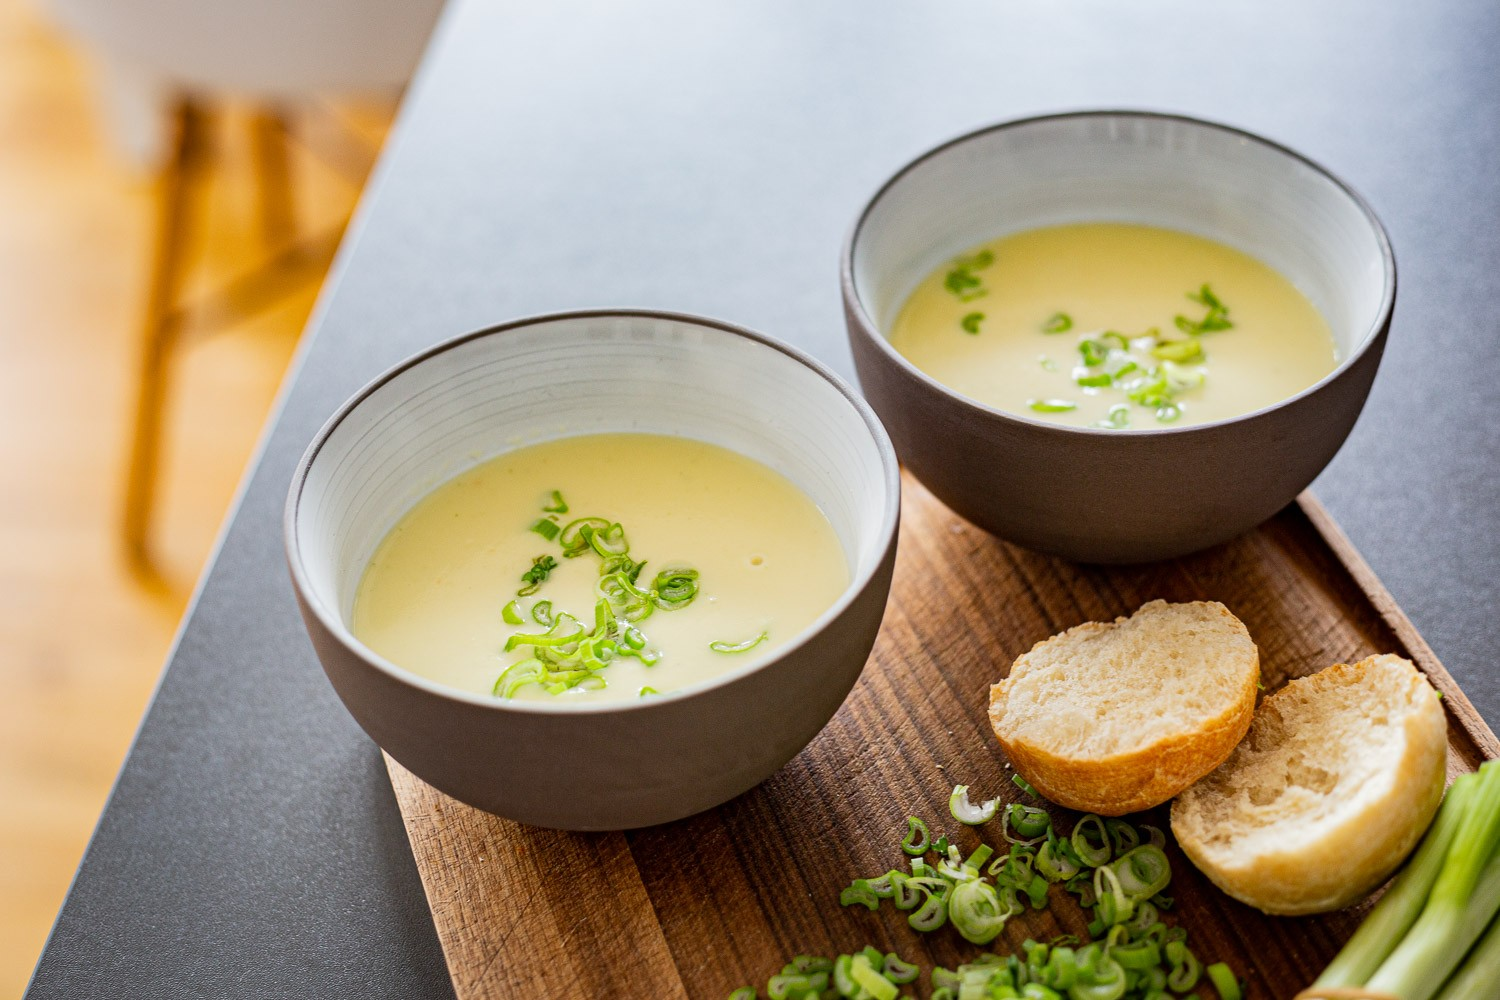 Petersilienwurzelcremesuppe